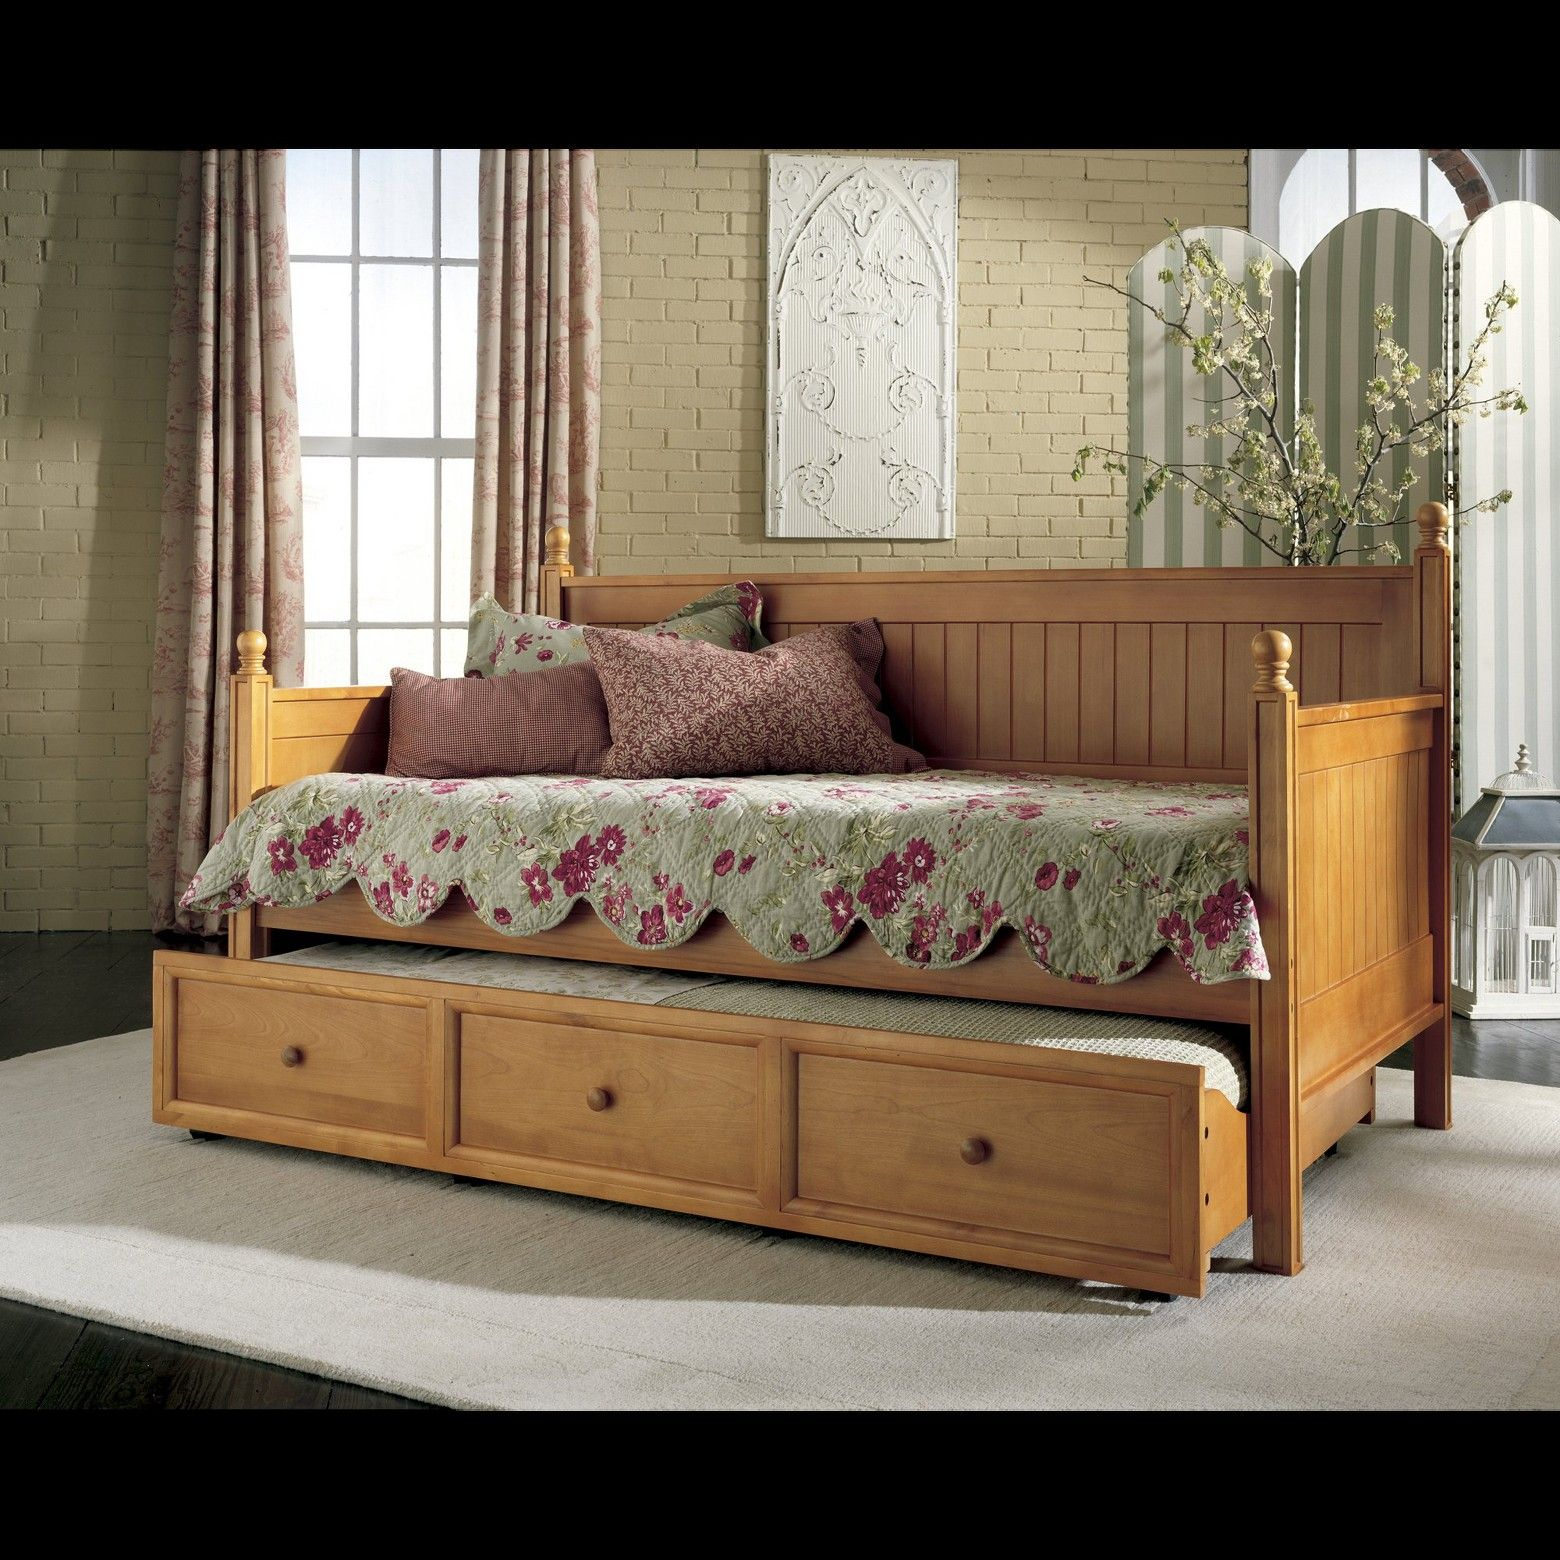 Diy Wooden Daybed With Trundle Google Search Wooden Daybed